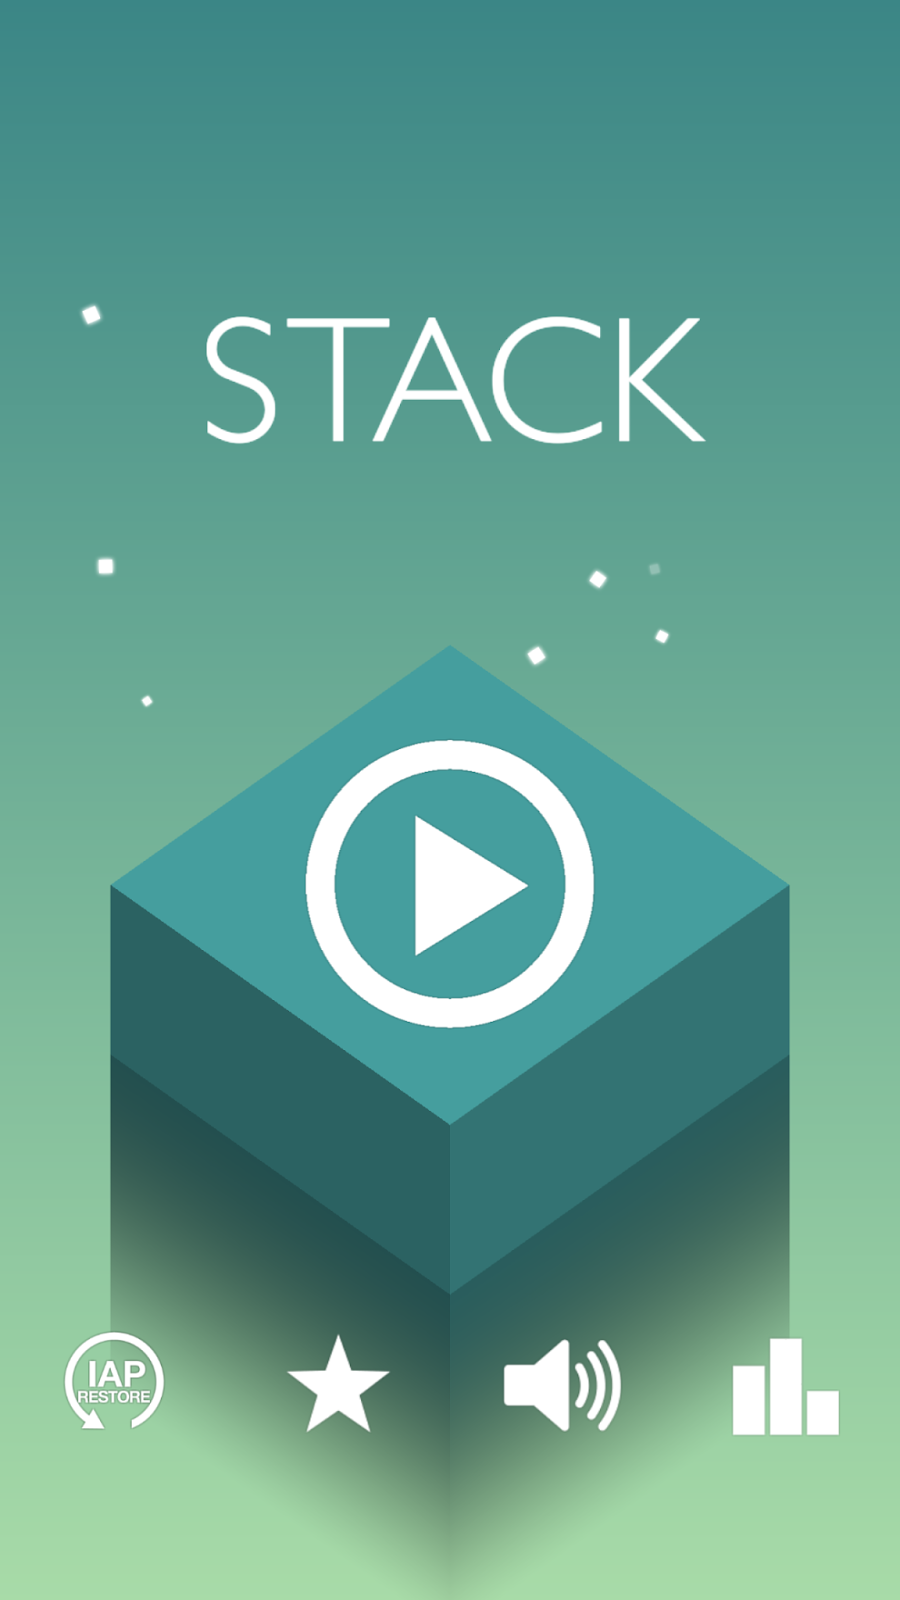 mern stack android application guide